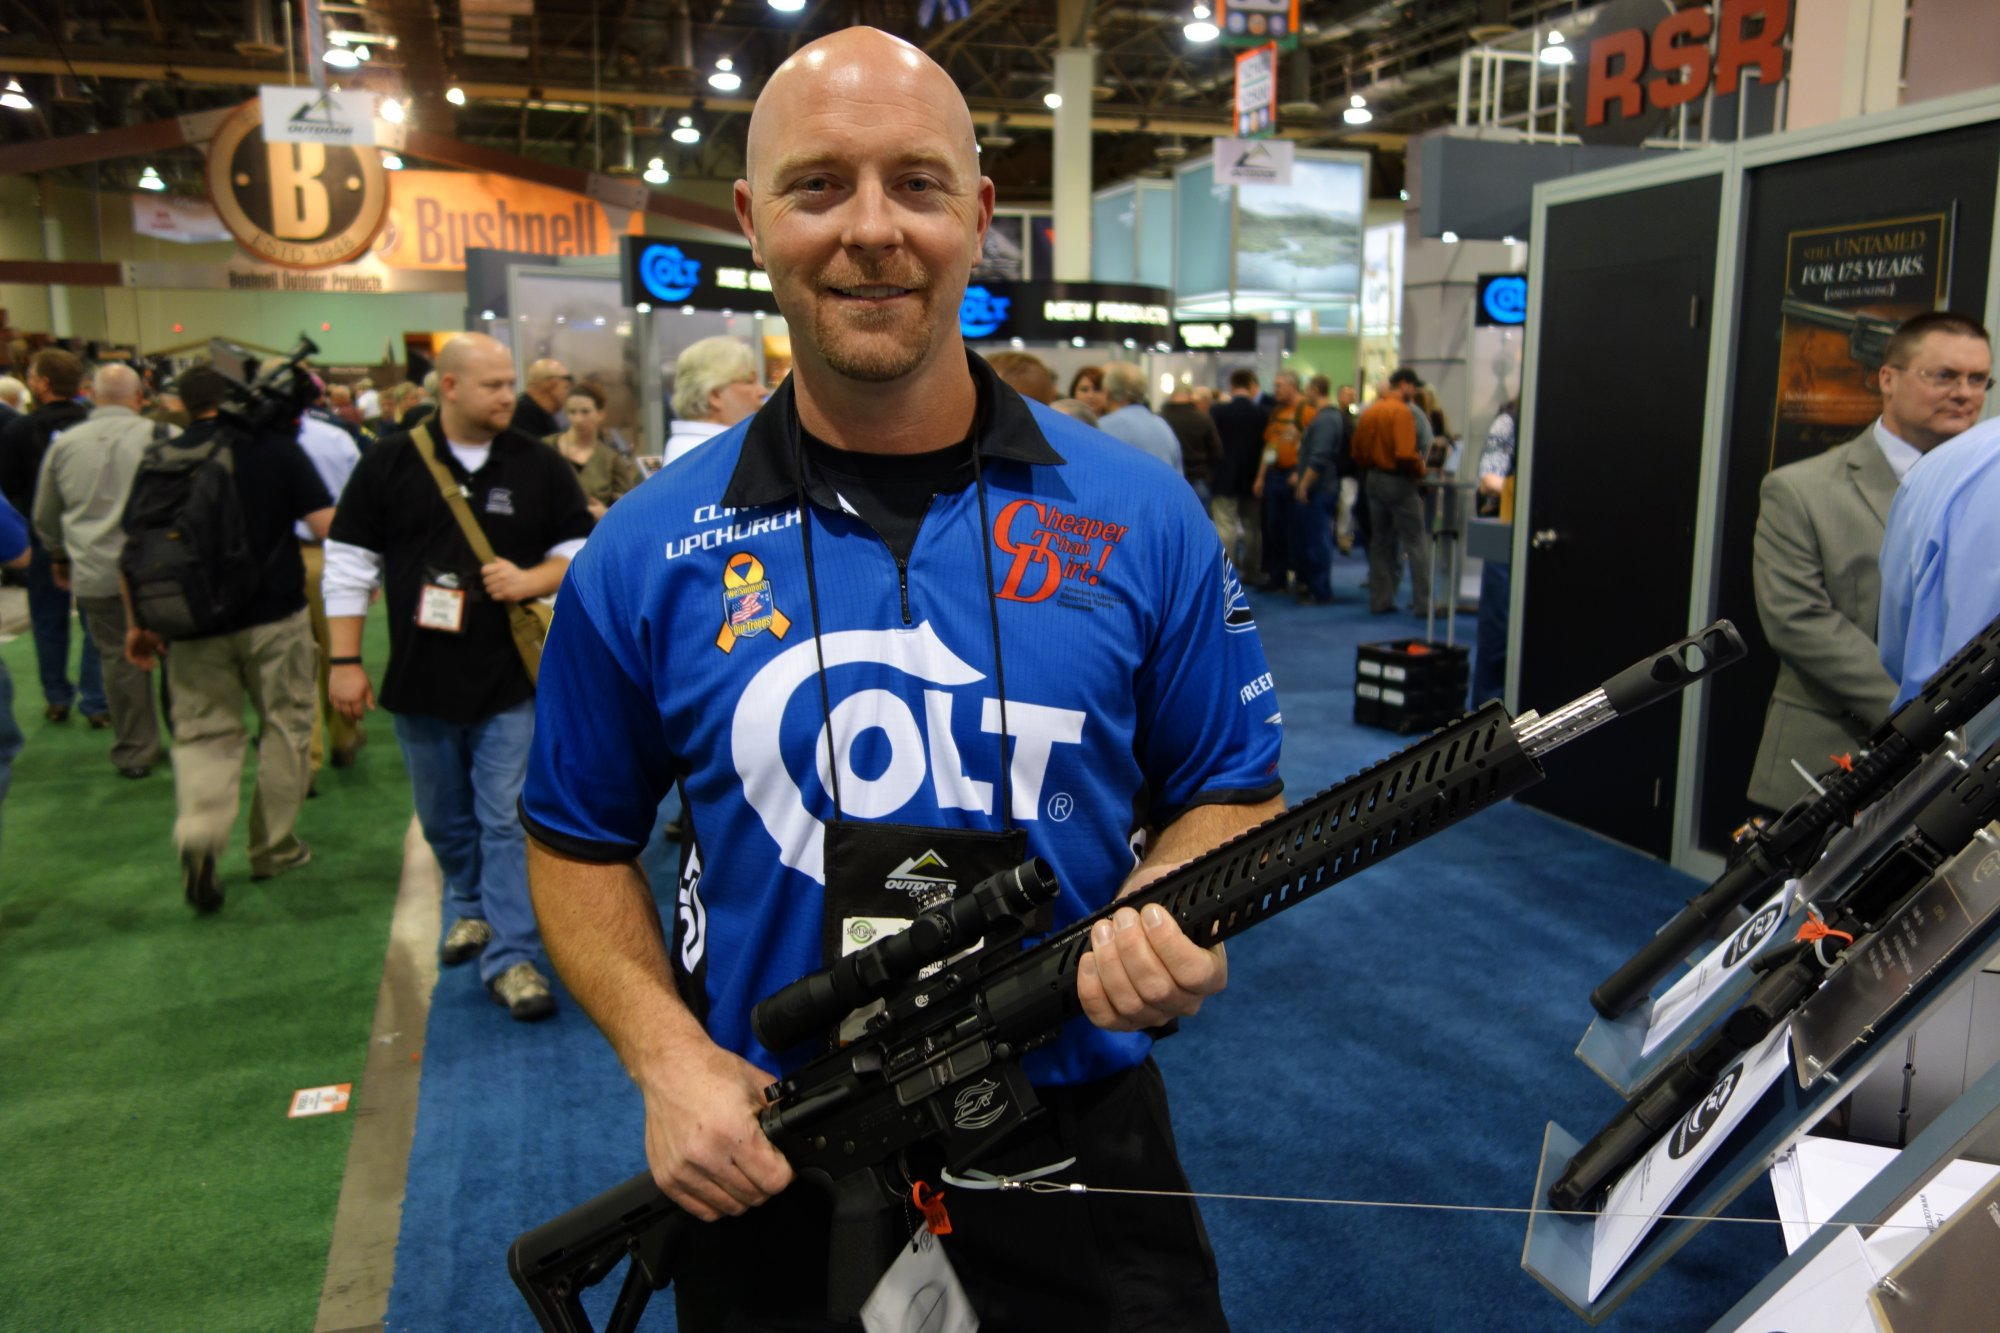 Colt Pro CRP 18 Competition AR 15 Carbine for Tactical 3 Gun Competition Competitive Shooting Clint Upchurch Colt Competition Rifles SHOT Show 2013 David Crane DefenseReview.com DR 2 Colt Pro CRP 18 and Pro CRP 16 AR 15 Carbine/Rifles for Tactical 3 Gun Competition/Competitive Shooting: Adjustable Gas System, Geissele SSA E Trigger, and Fluted Barrel! (Video!)